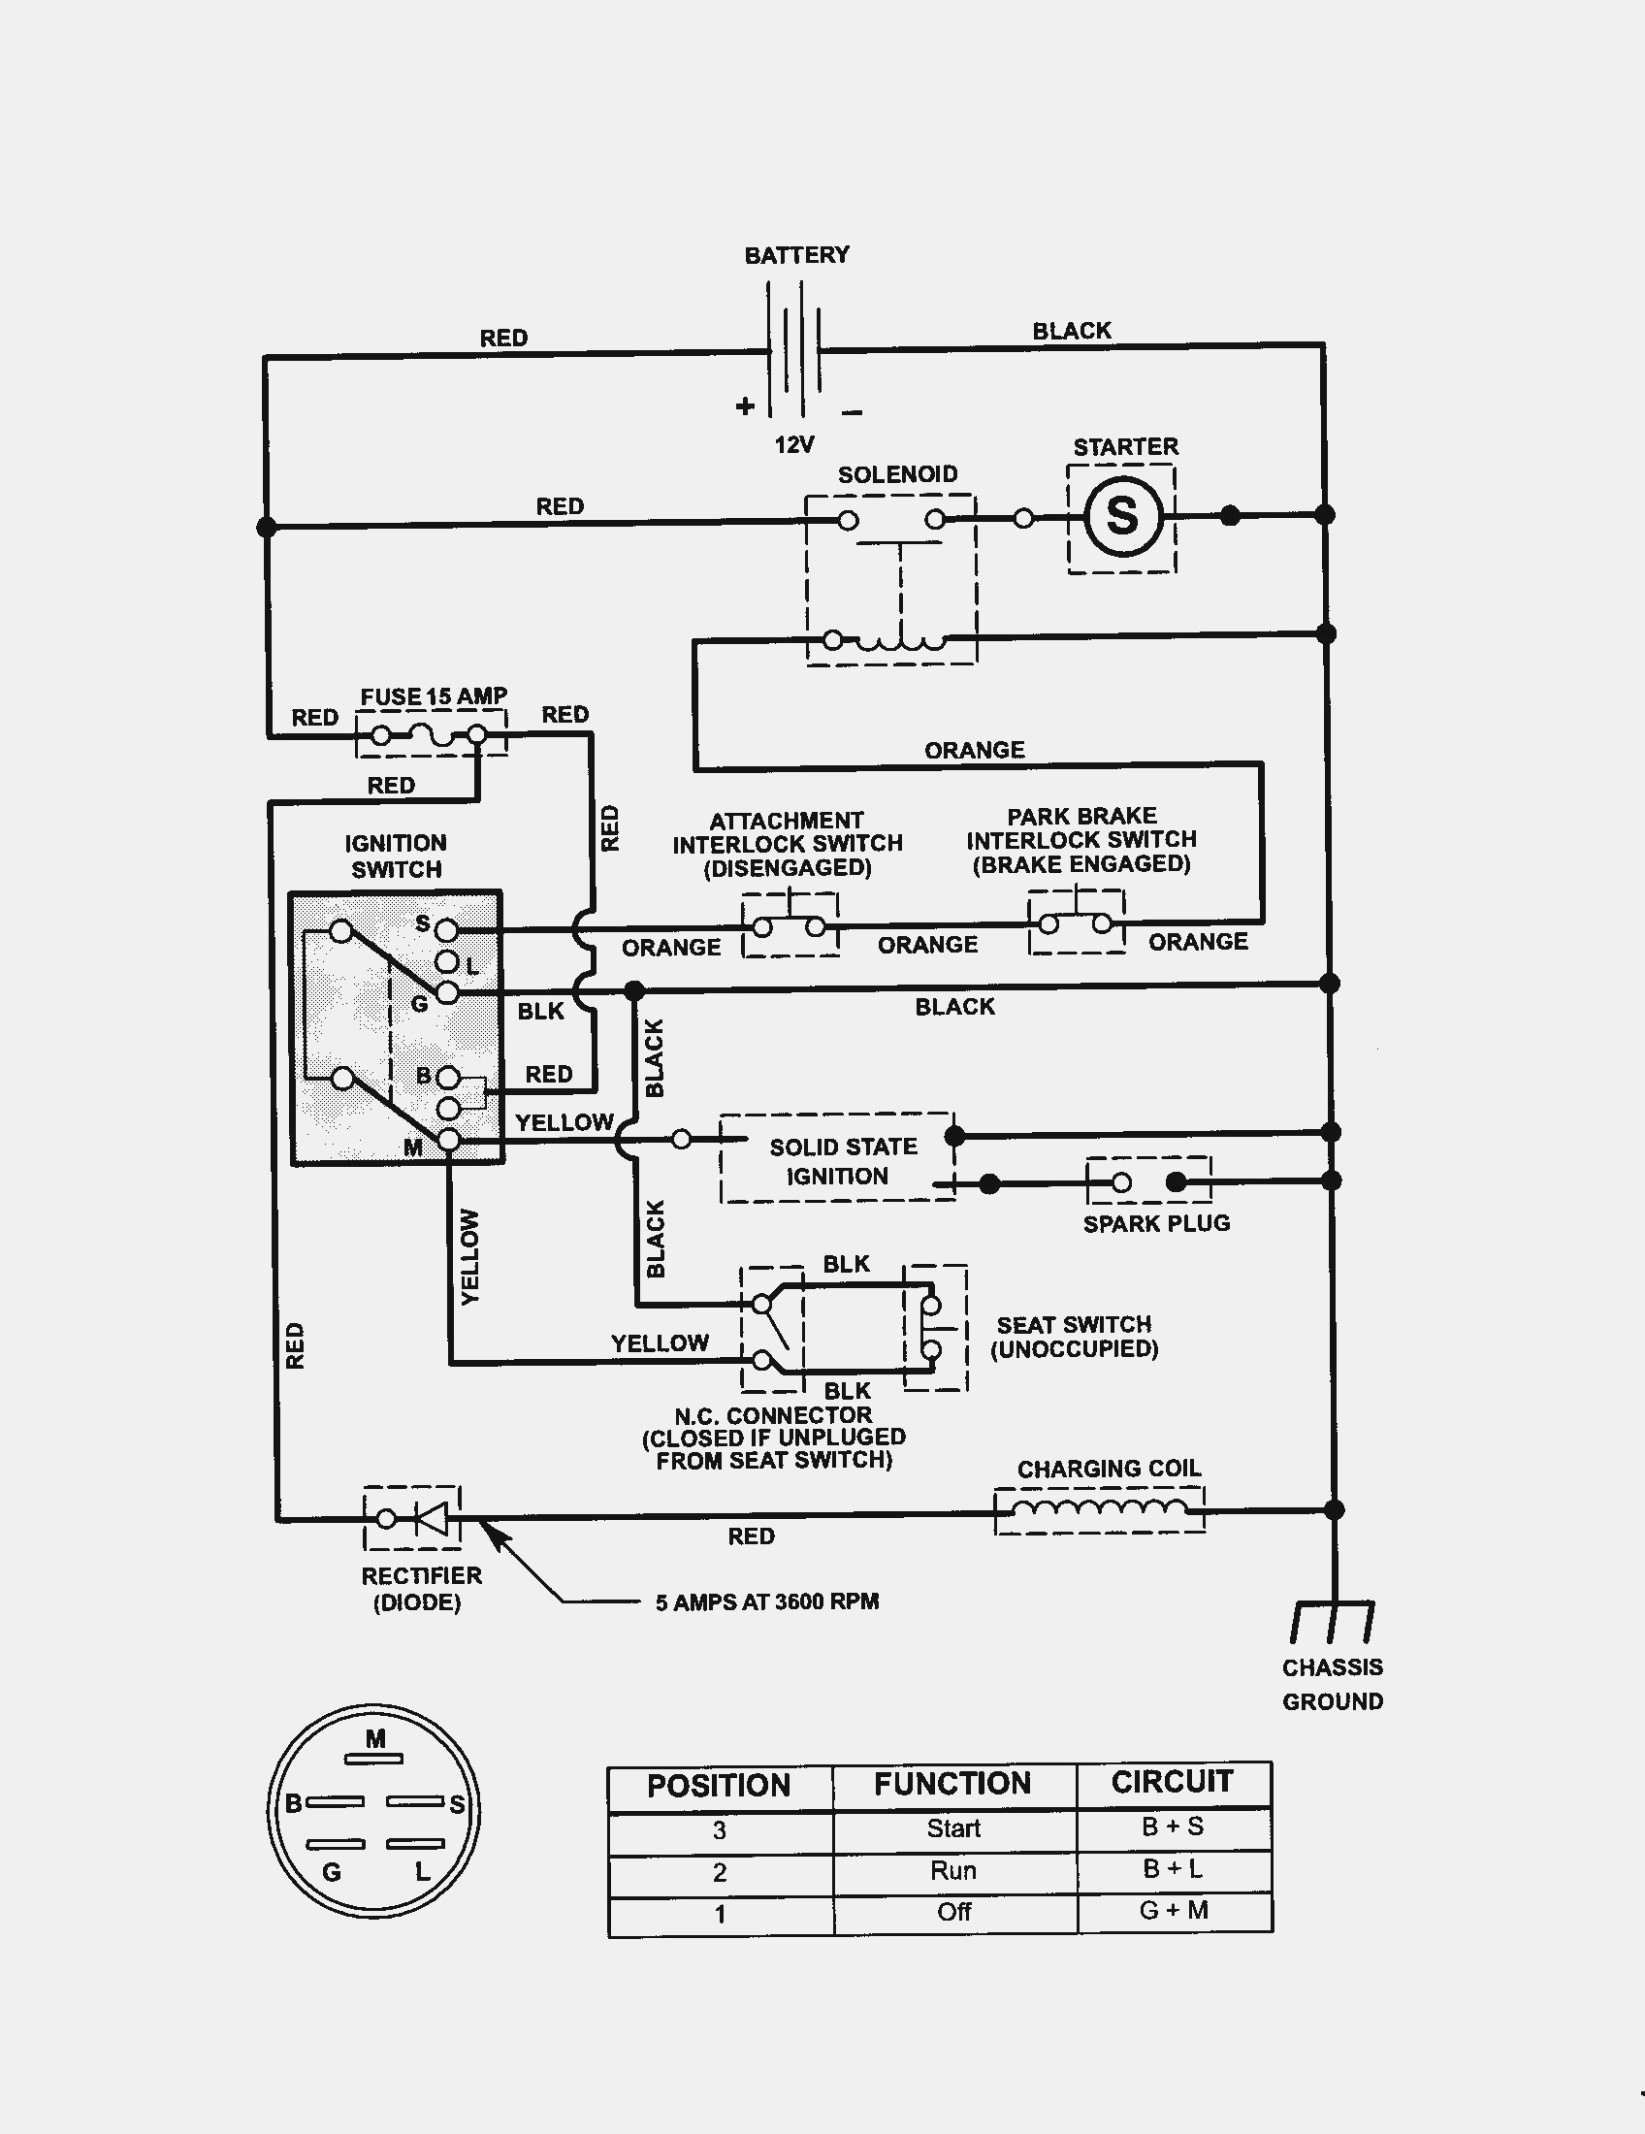 11 Unbelievable Facts About Briggs And | Diagram Information - Briggs And Stratton Charging System Wiring Diagram